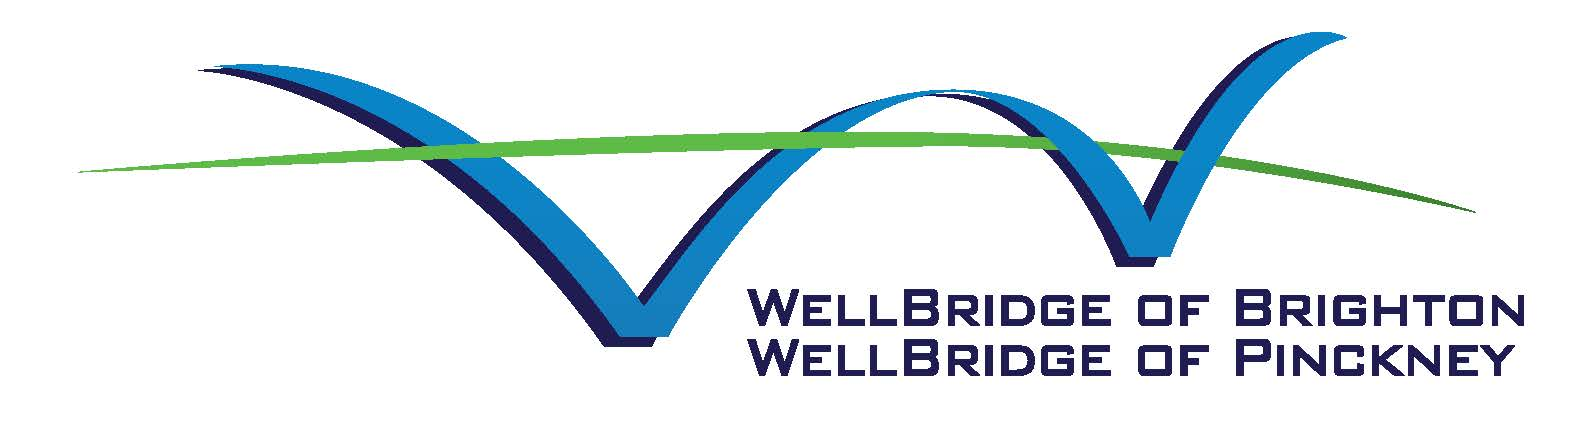 WellBridge_Brighton_PinckneyUSE_FOR_ANNUAL_BUSINESS_SPONSORSHIP_6.14.16.jpg